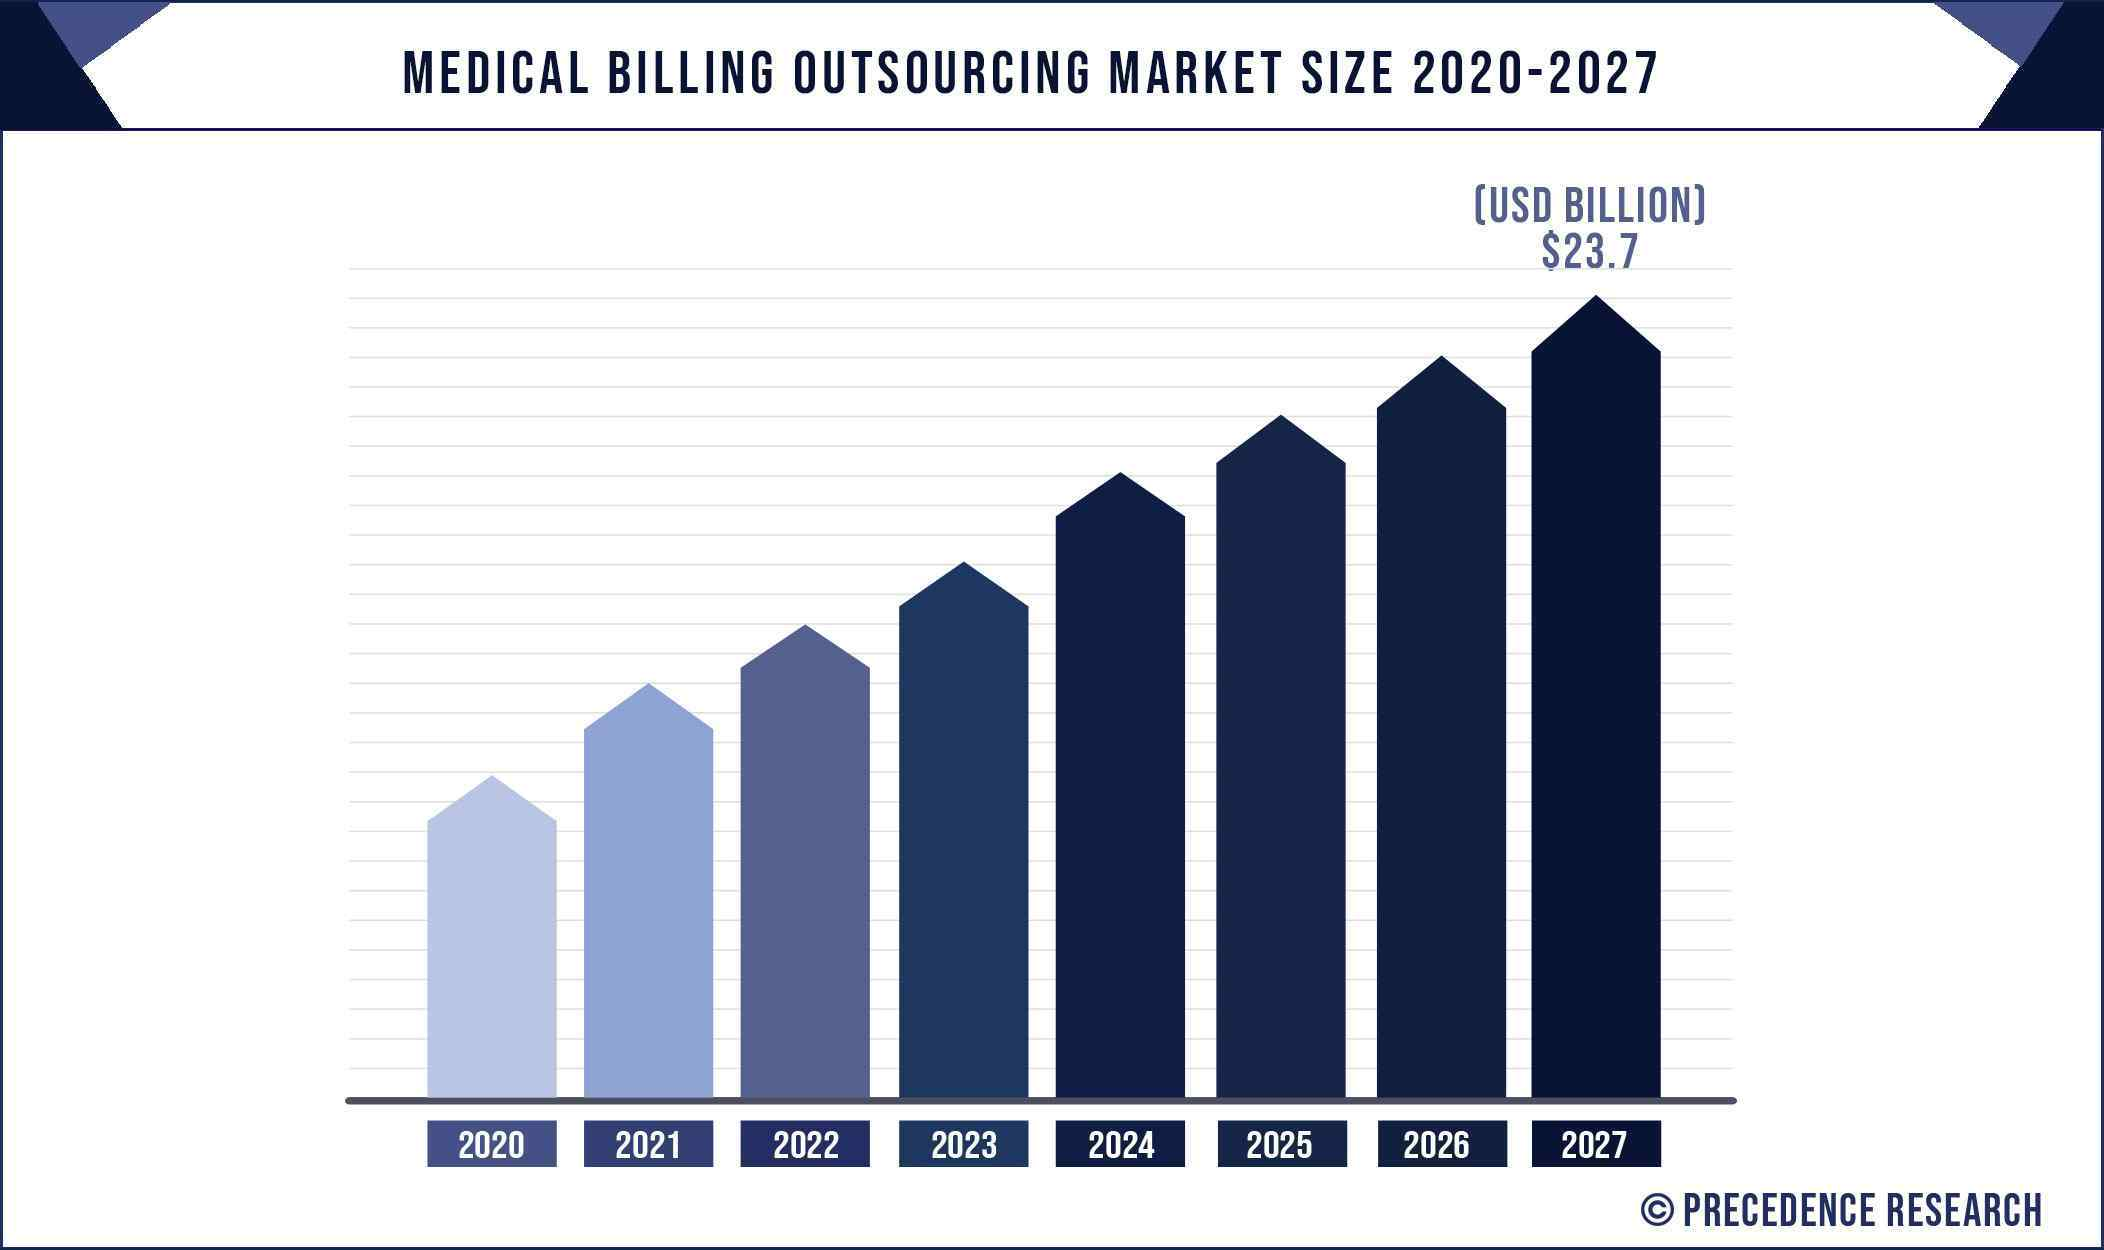 Medical Billing Outsourcing Market Size 2020 to 2027